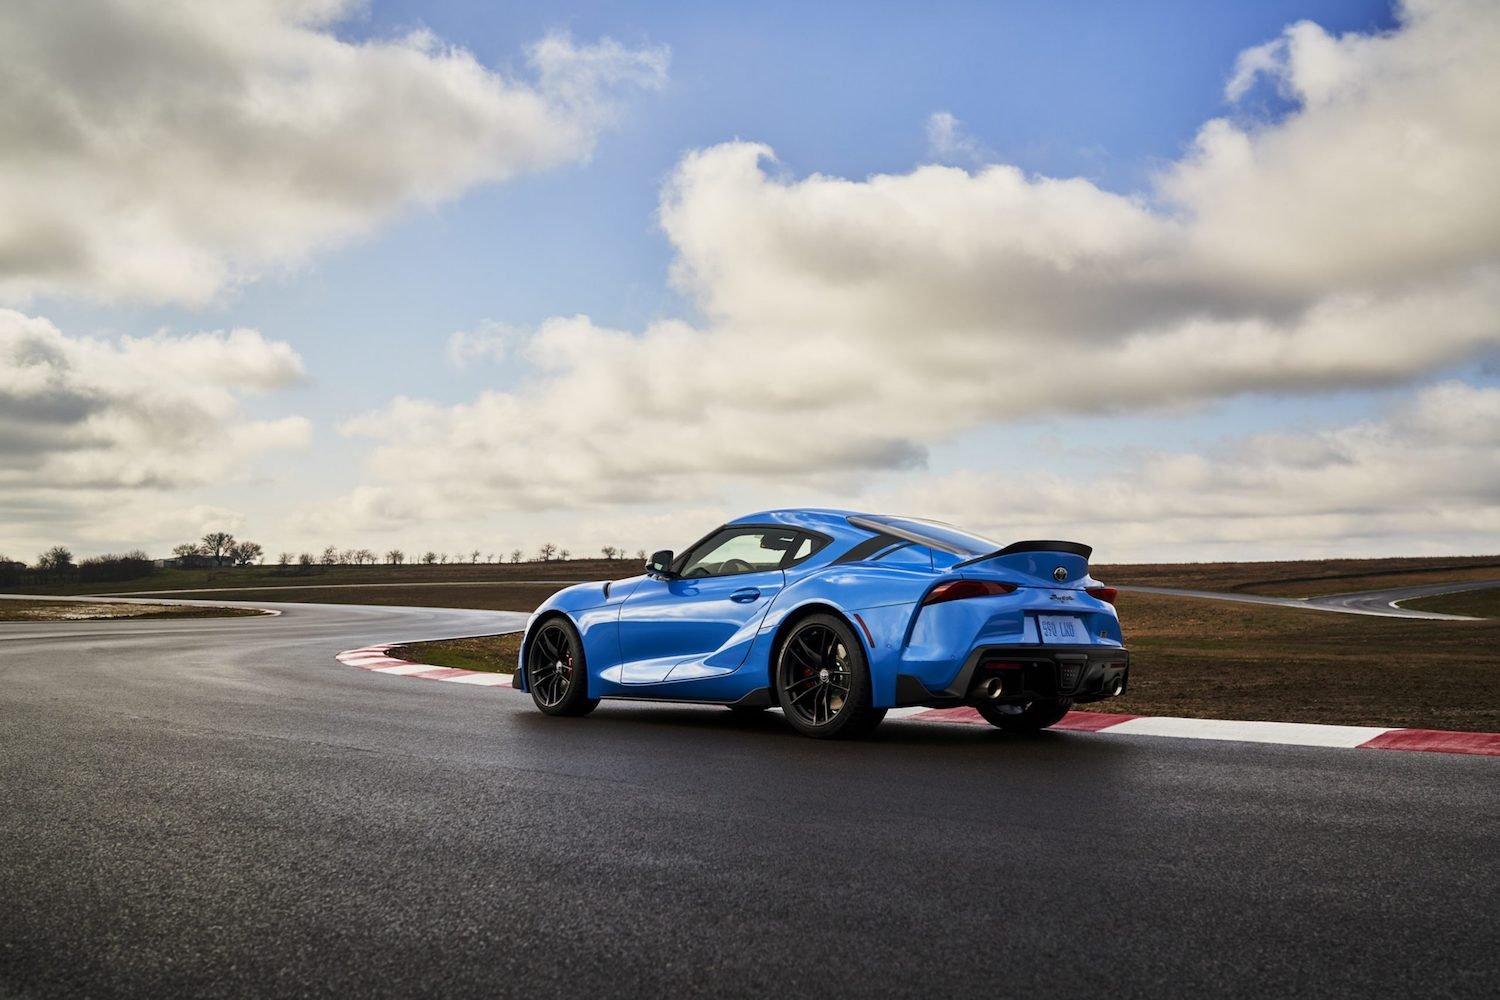 GR Supra A91 Edition rear three-quarter on track action